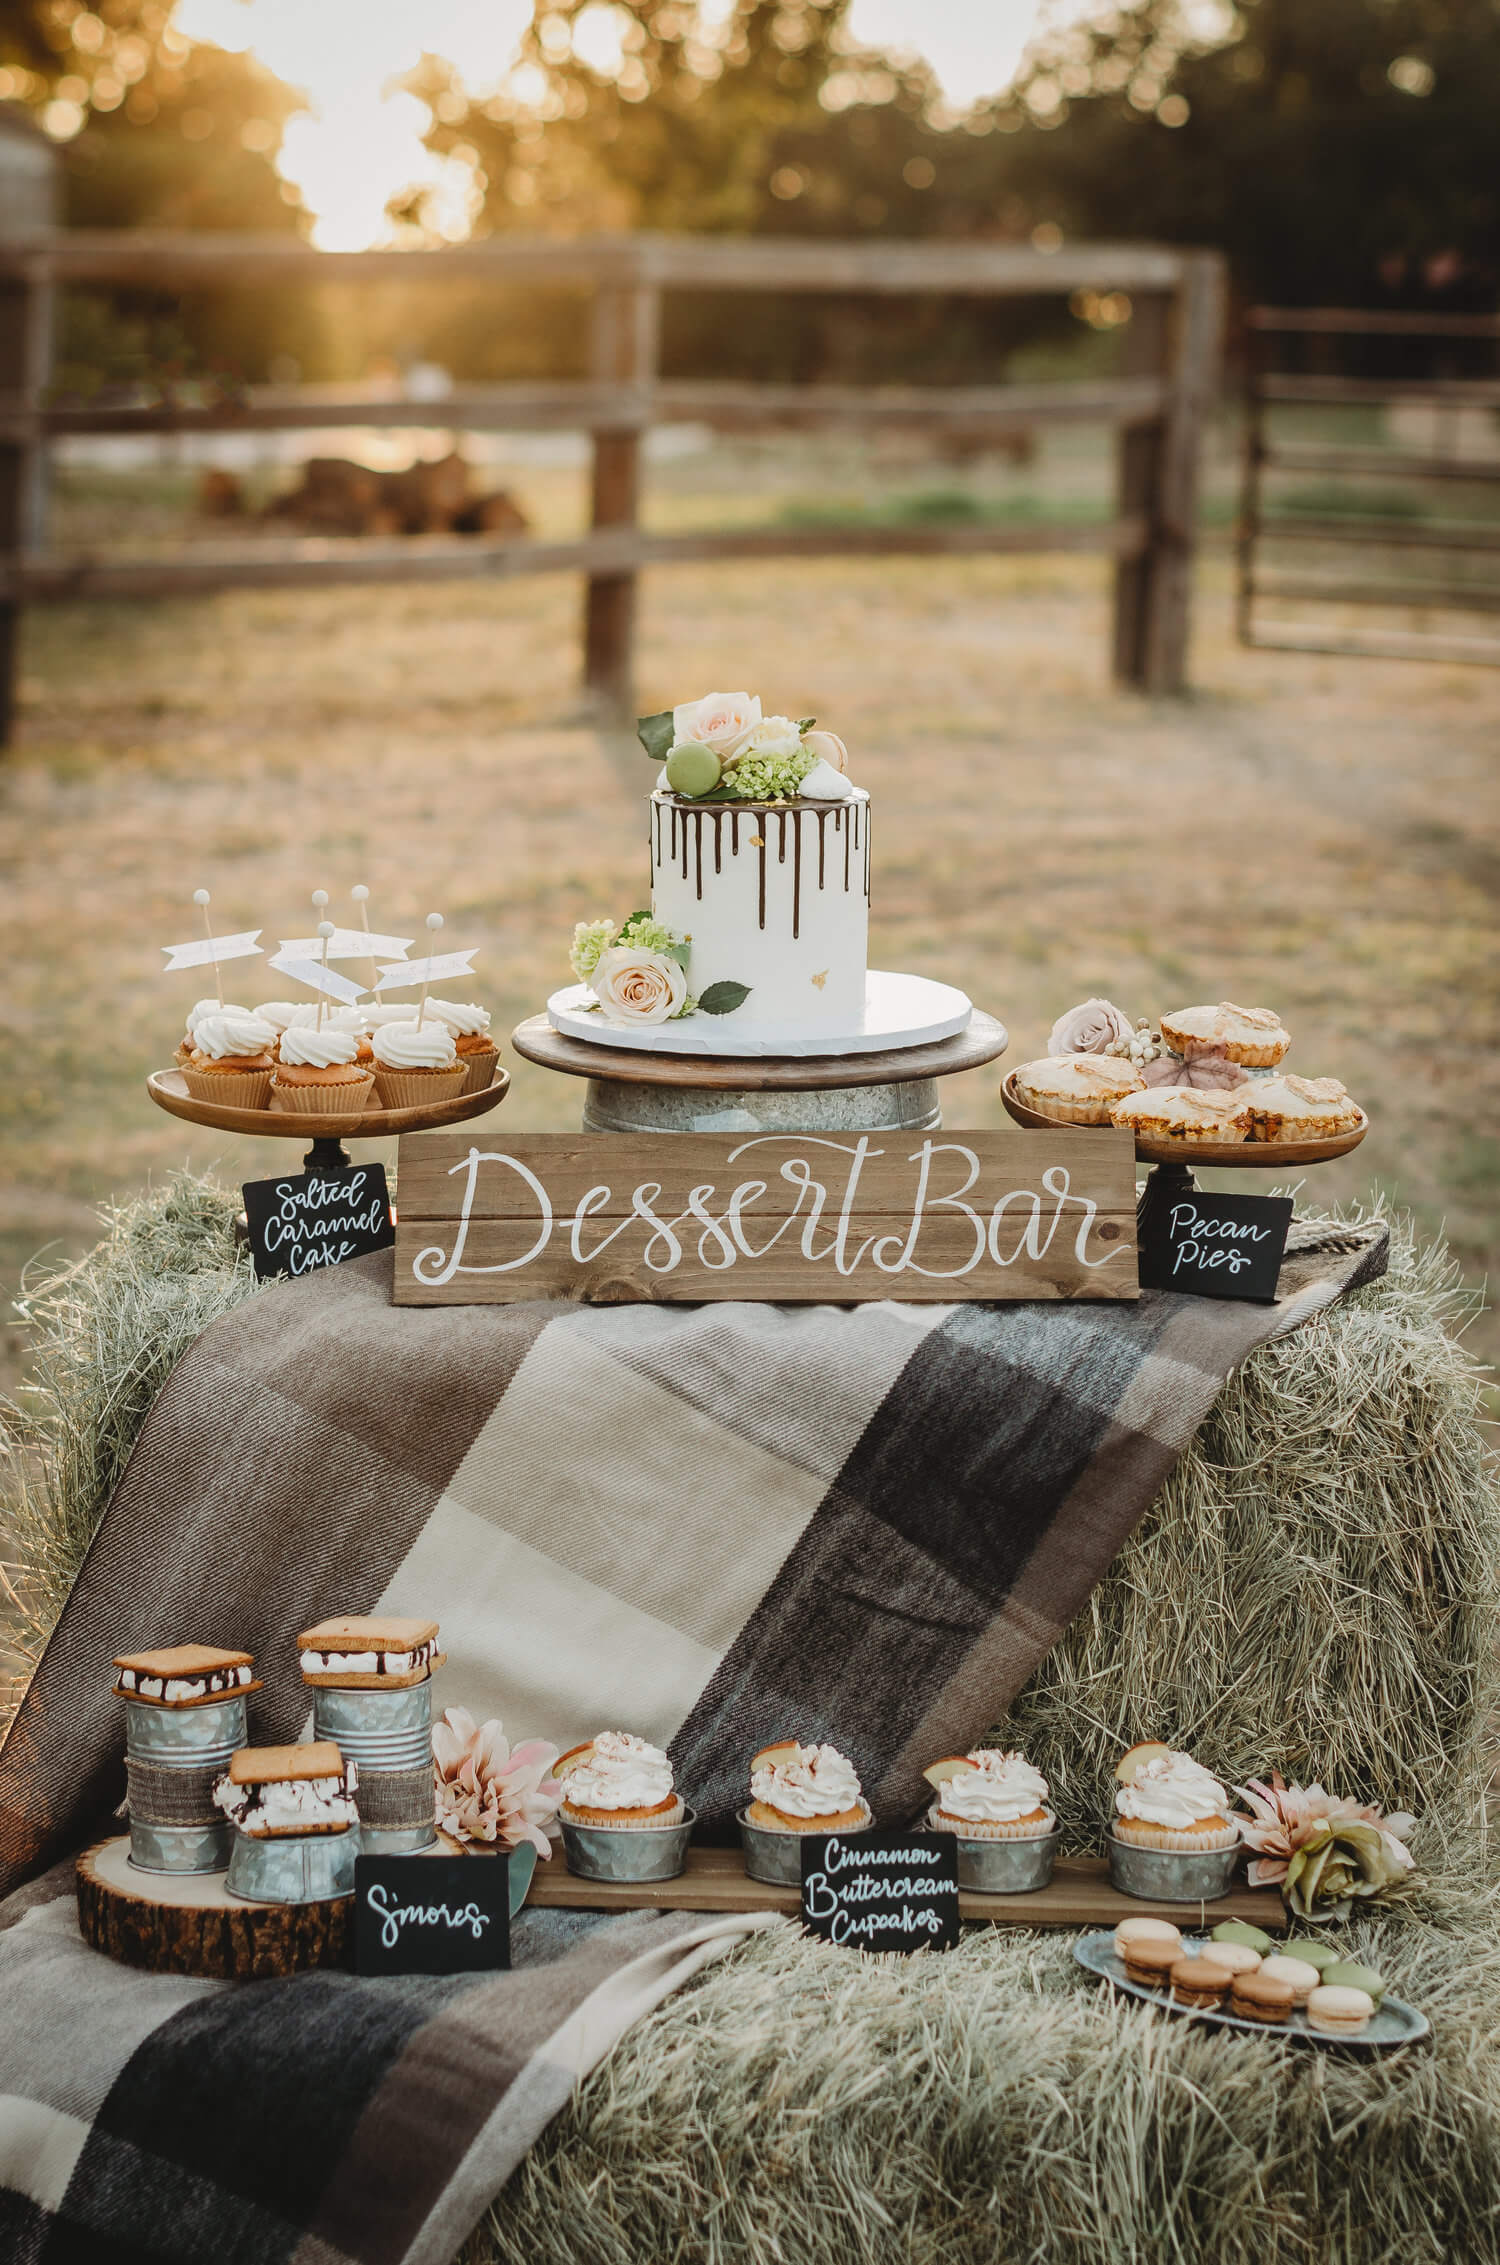 This drip frosted cake takes the spotlight at this Rustic Bridal Shower. Click to see many more bridal shower ideas from this Fall in Love party theme. Created by party stylist Mint Event Design. #bridalshowers #bridalshowerideas #rusticwedding #rusticbridalshower #bridalshowerdecor #farmwedding #partyideas #fallbridalshower #dessertbar